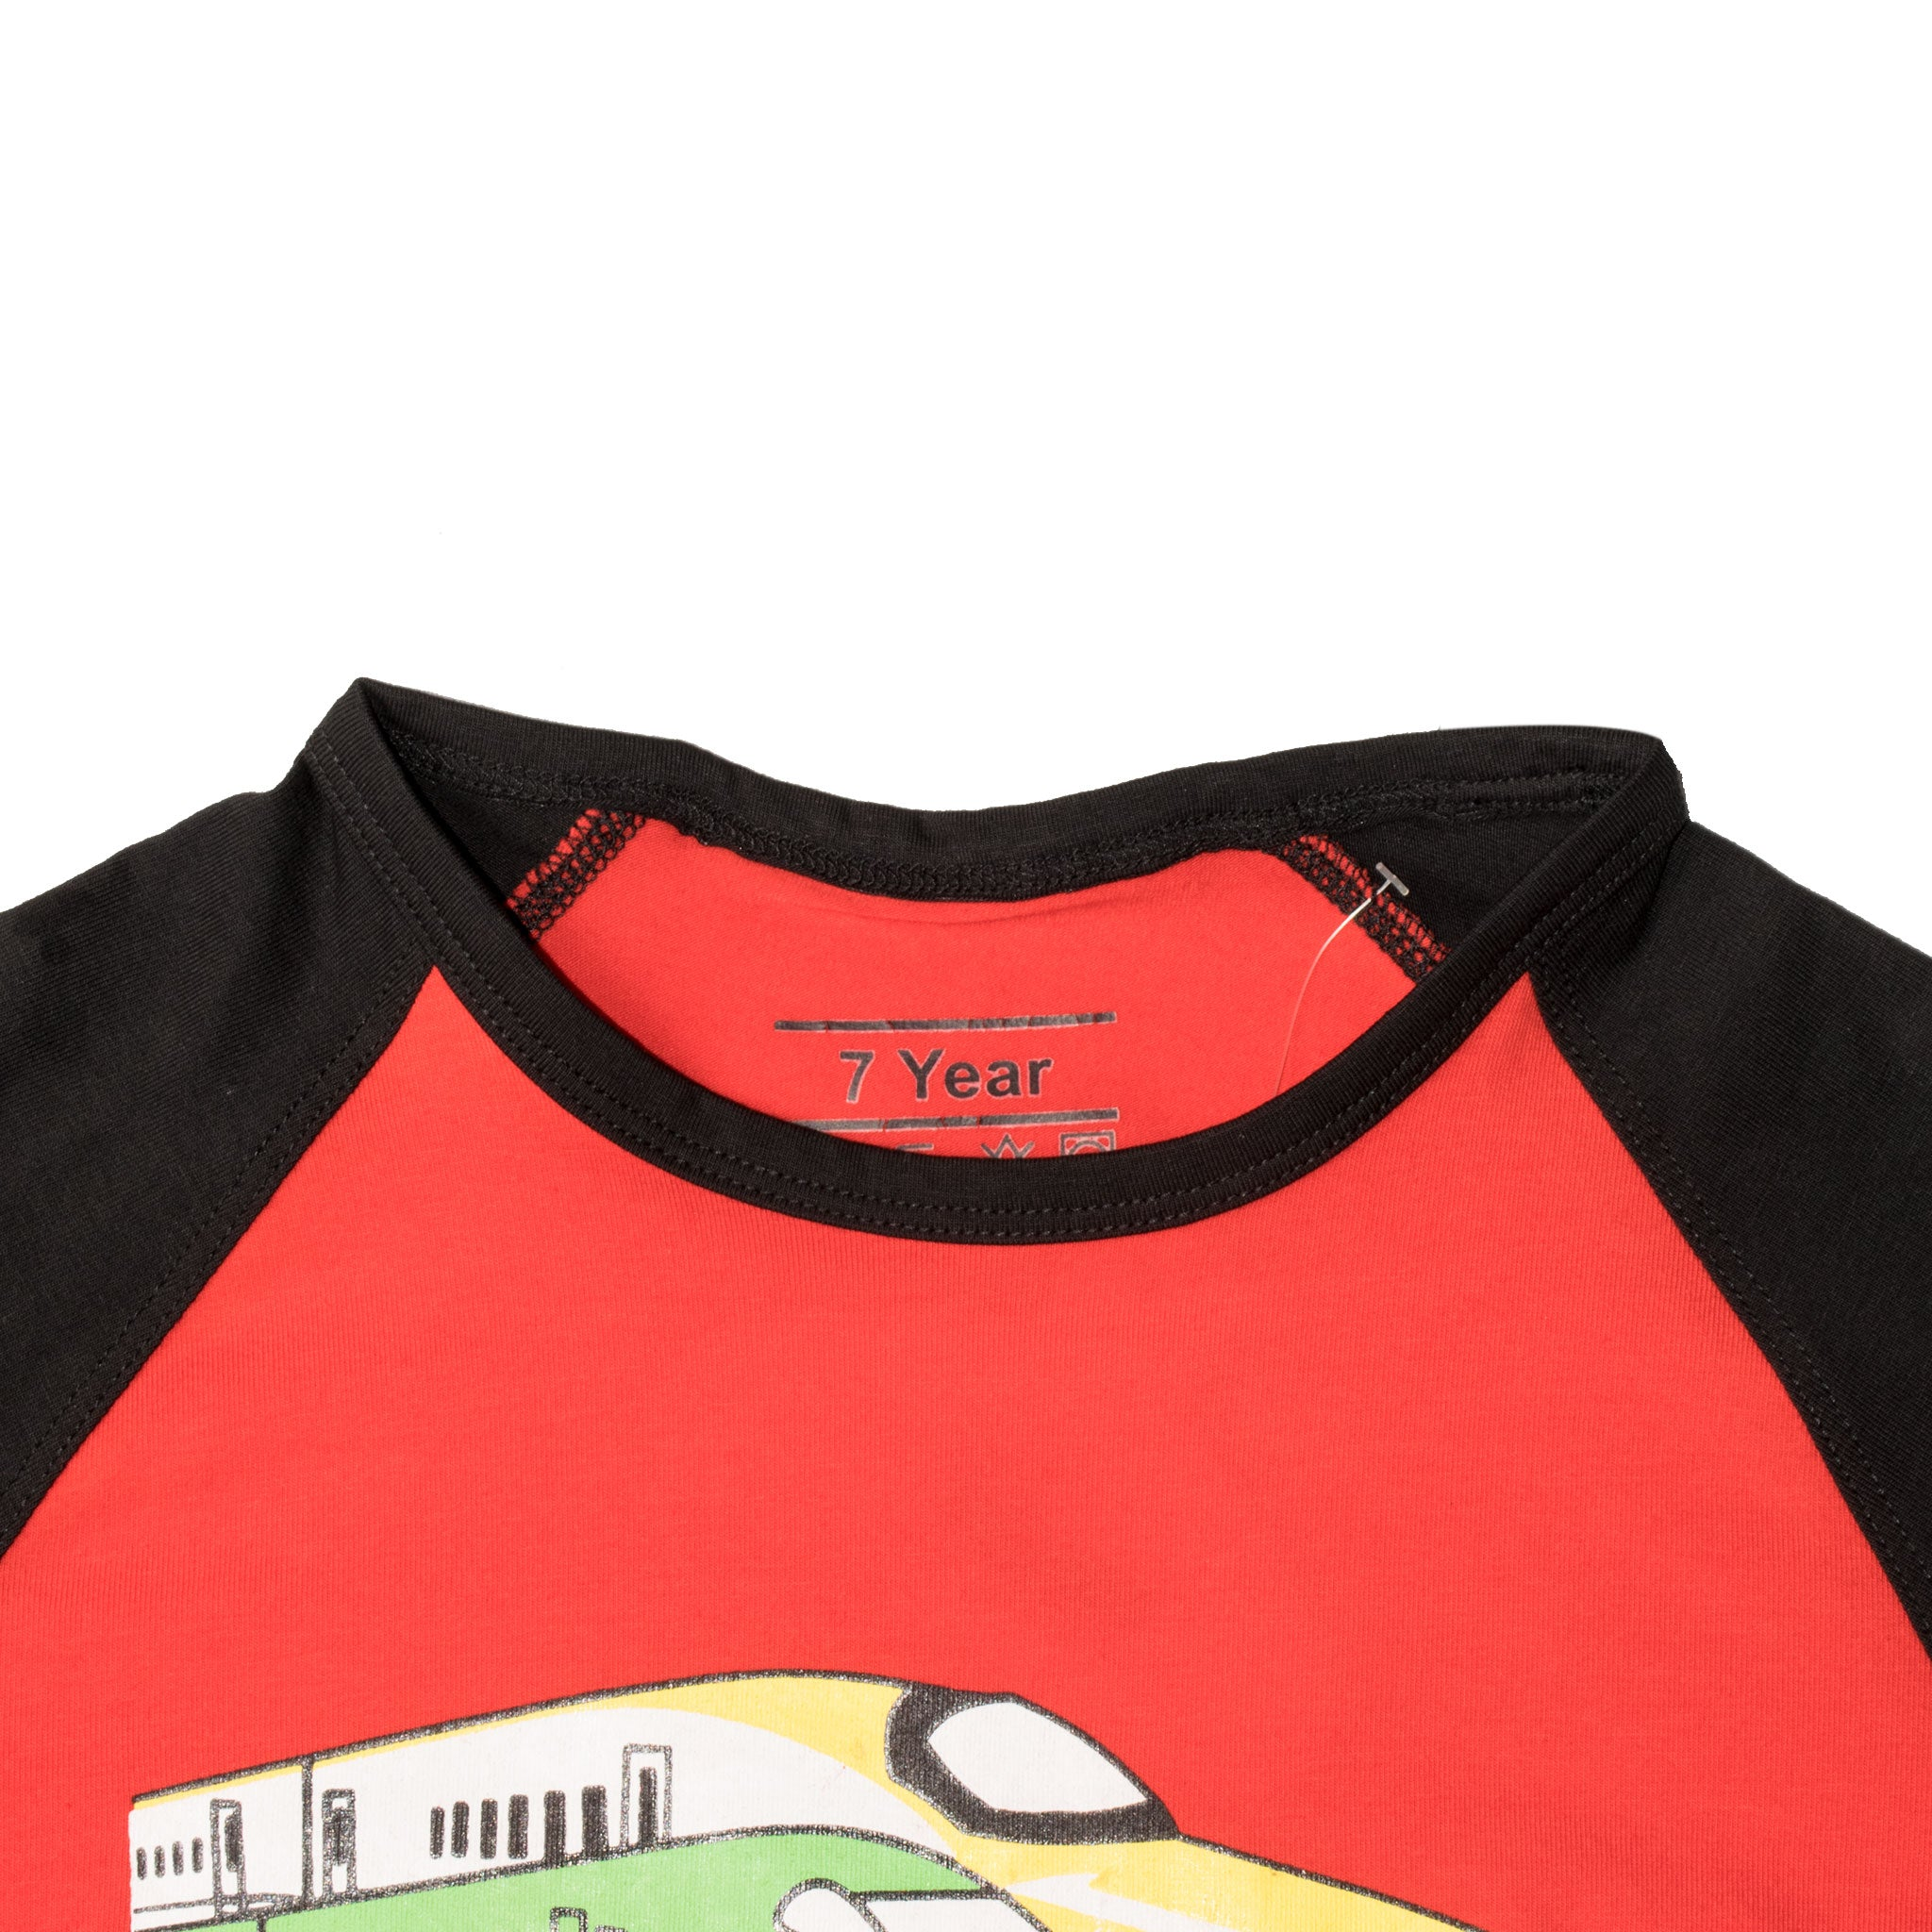 BOYS S/S RAGLAN-RED/BLACK-SSSS20KB-1110